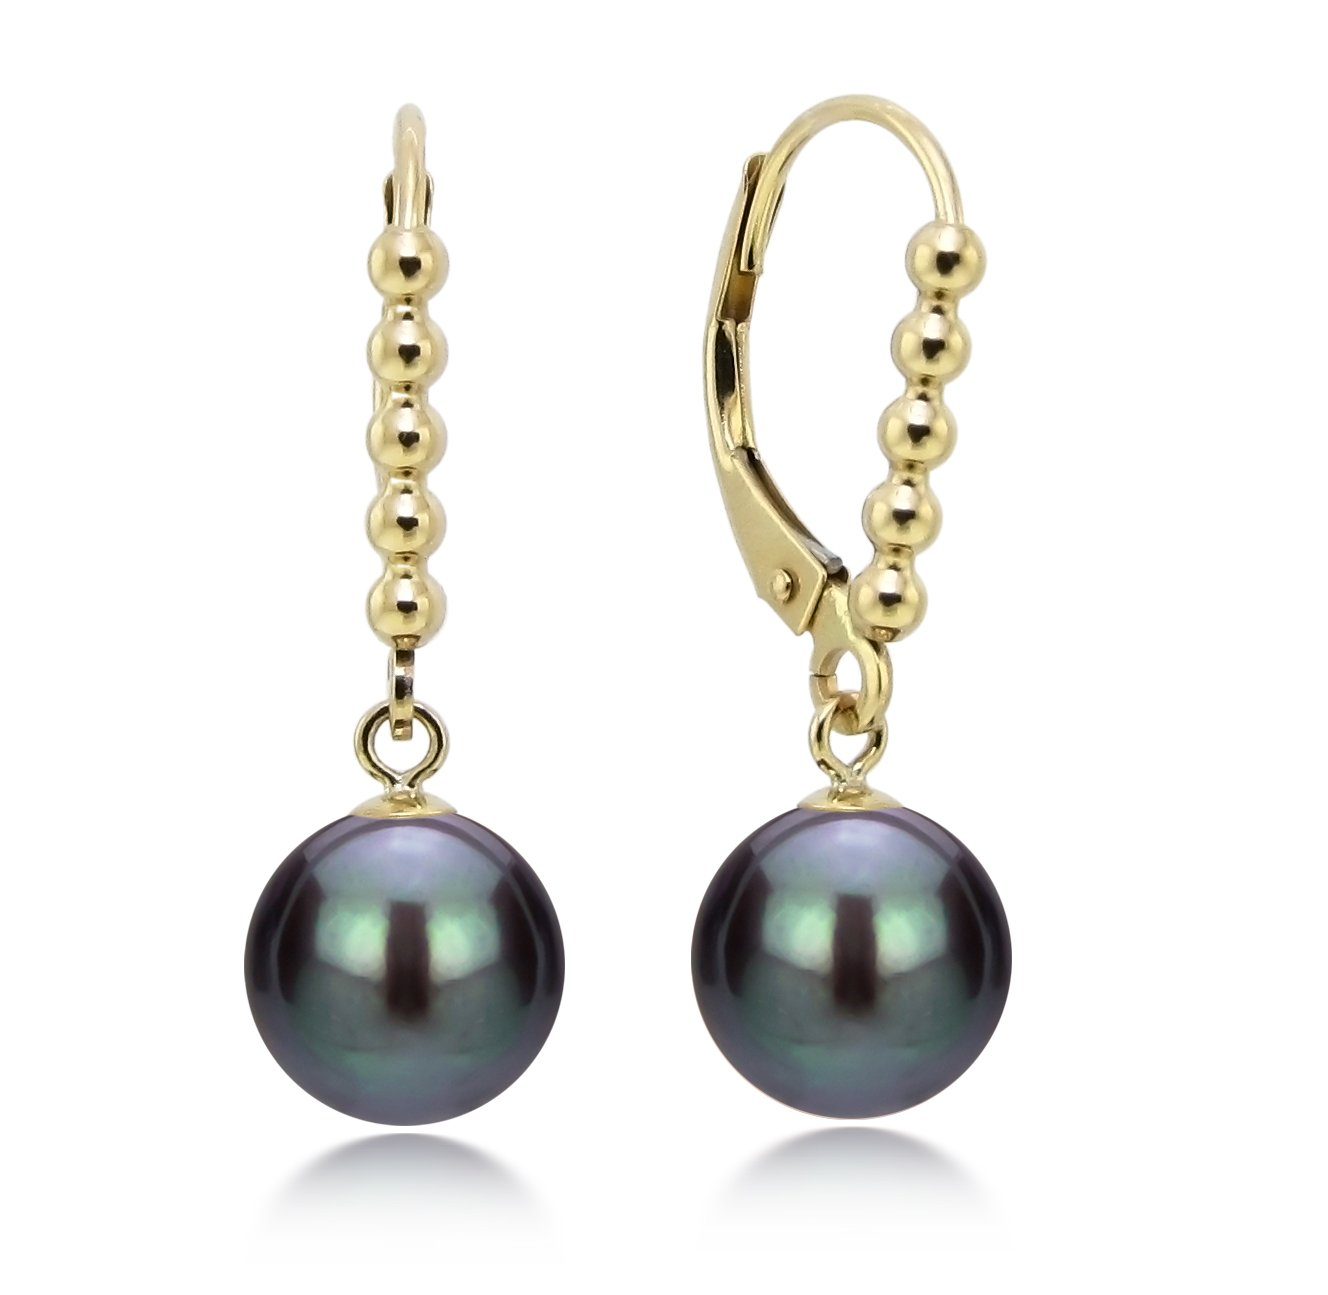 14k Yellow Gold 8-8.5mm Dyed-black Freshwater Cultured Pearl Beaded Design Lever-back Earrings